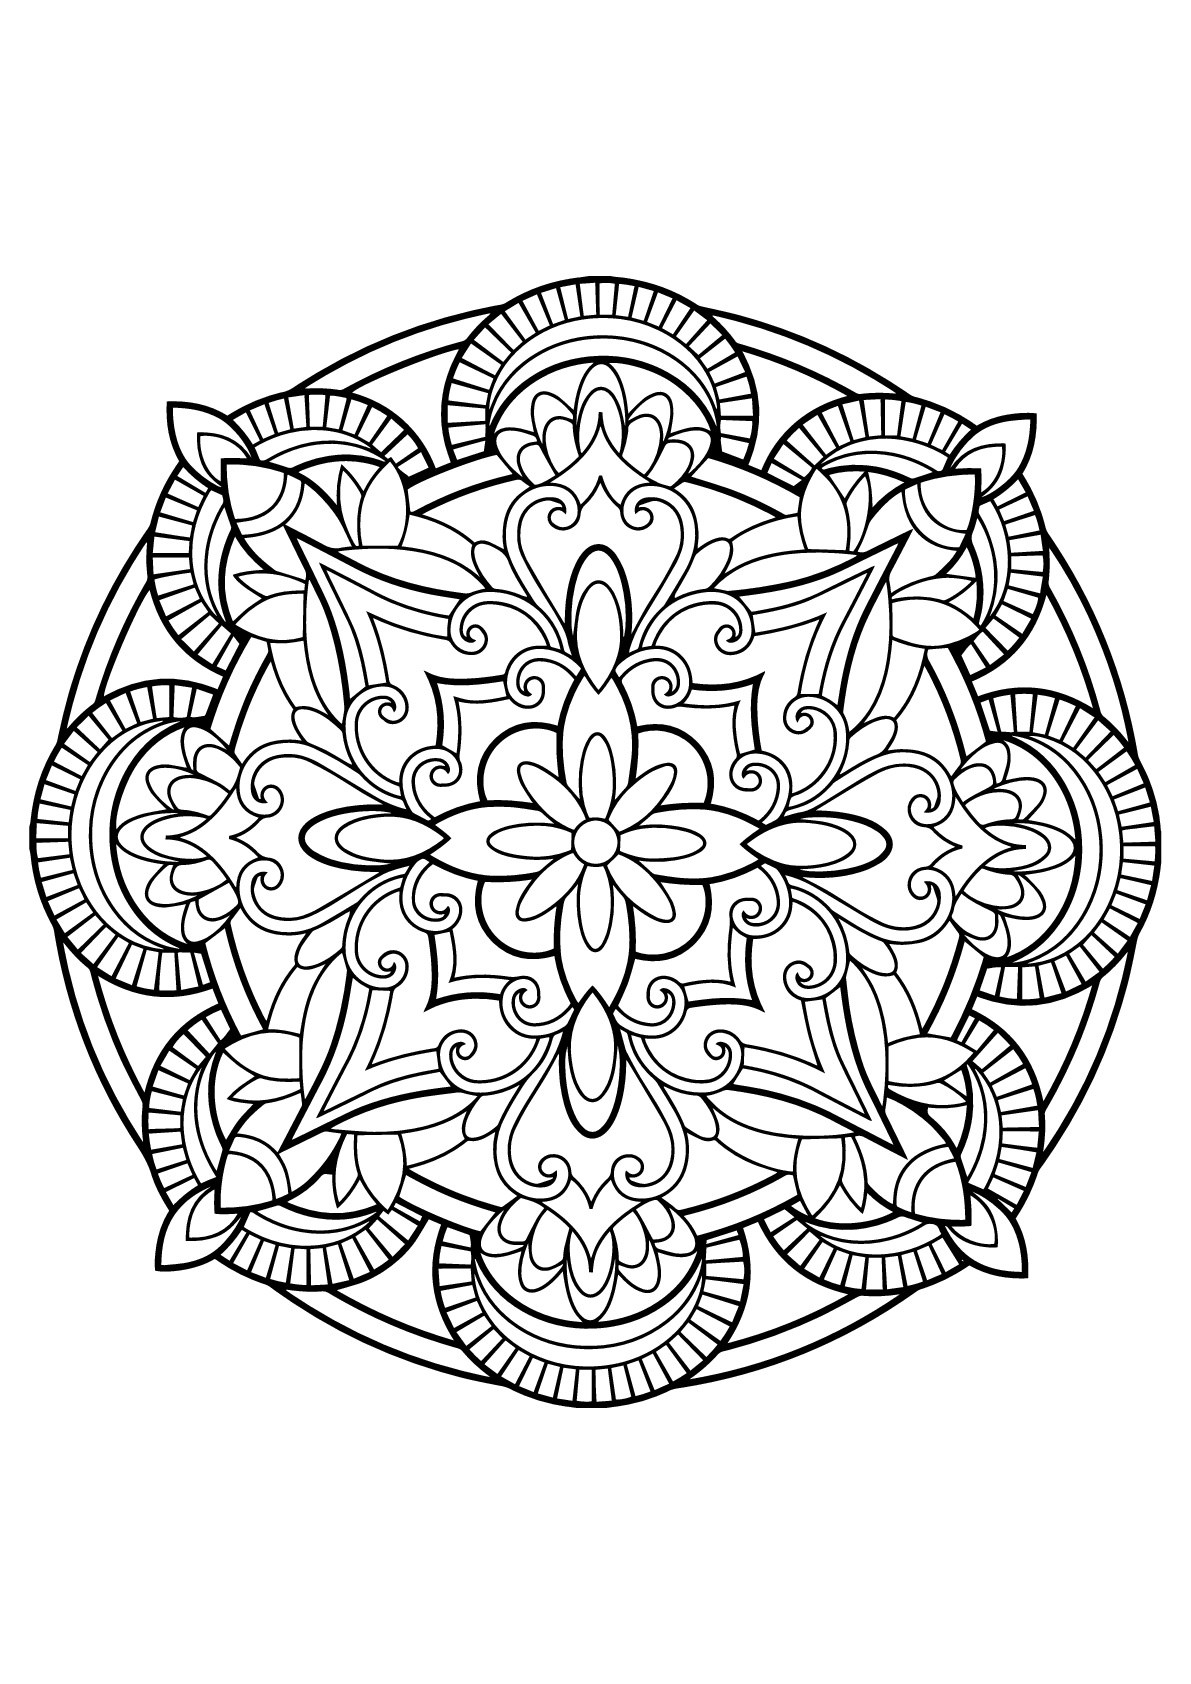 free printable mandalas to color for adults mandala from free coloring books for adults 4 mandalas to mandalas printable for free adults color